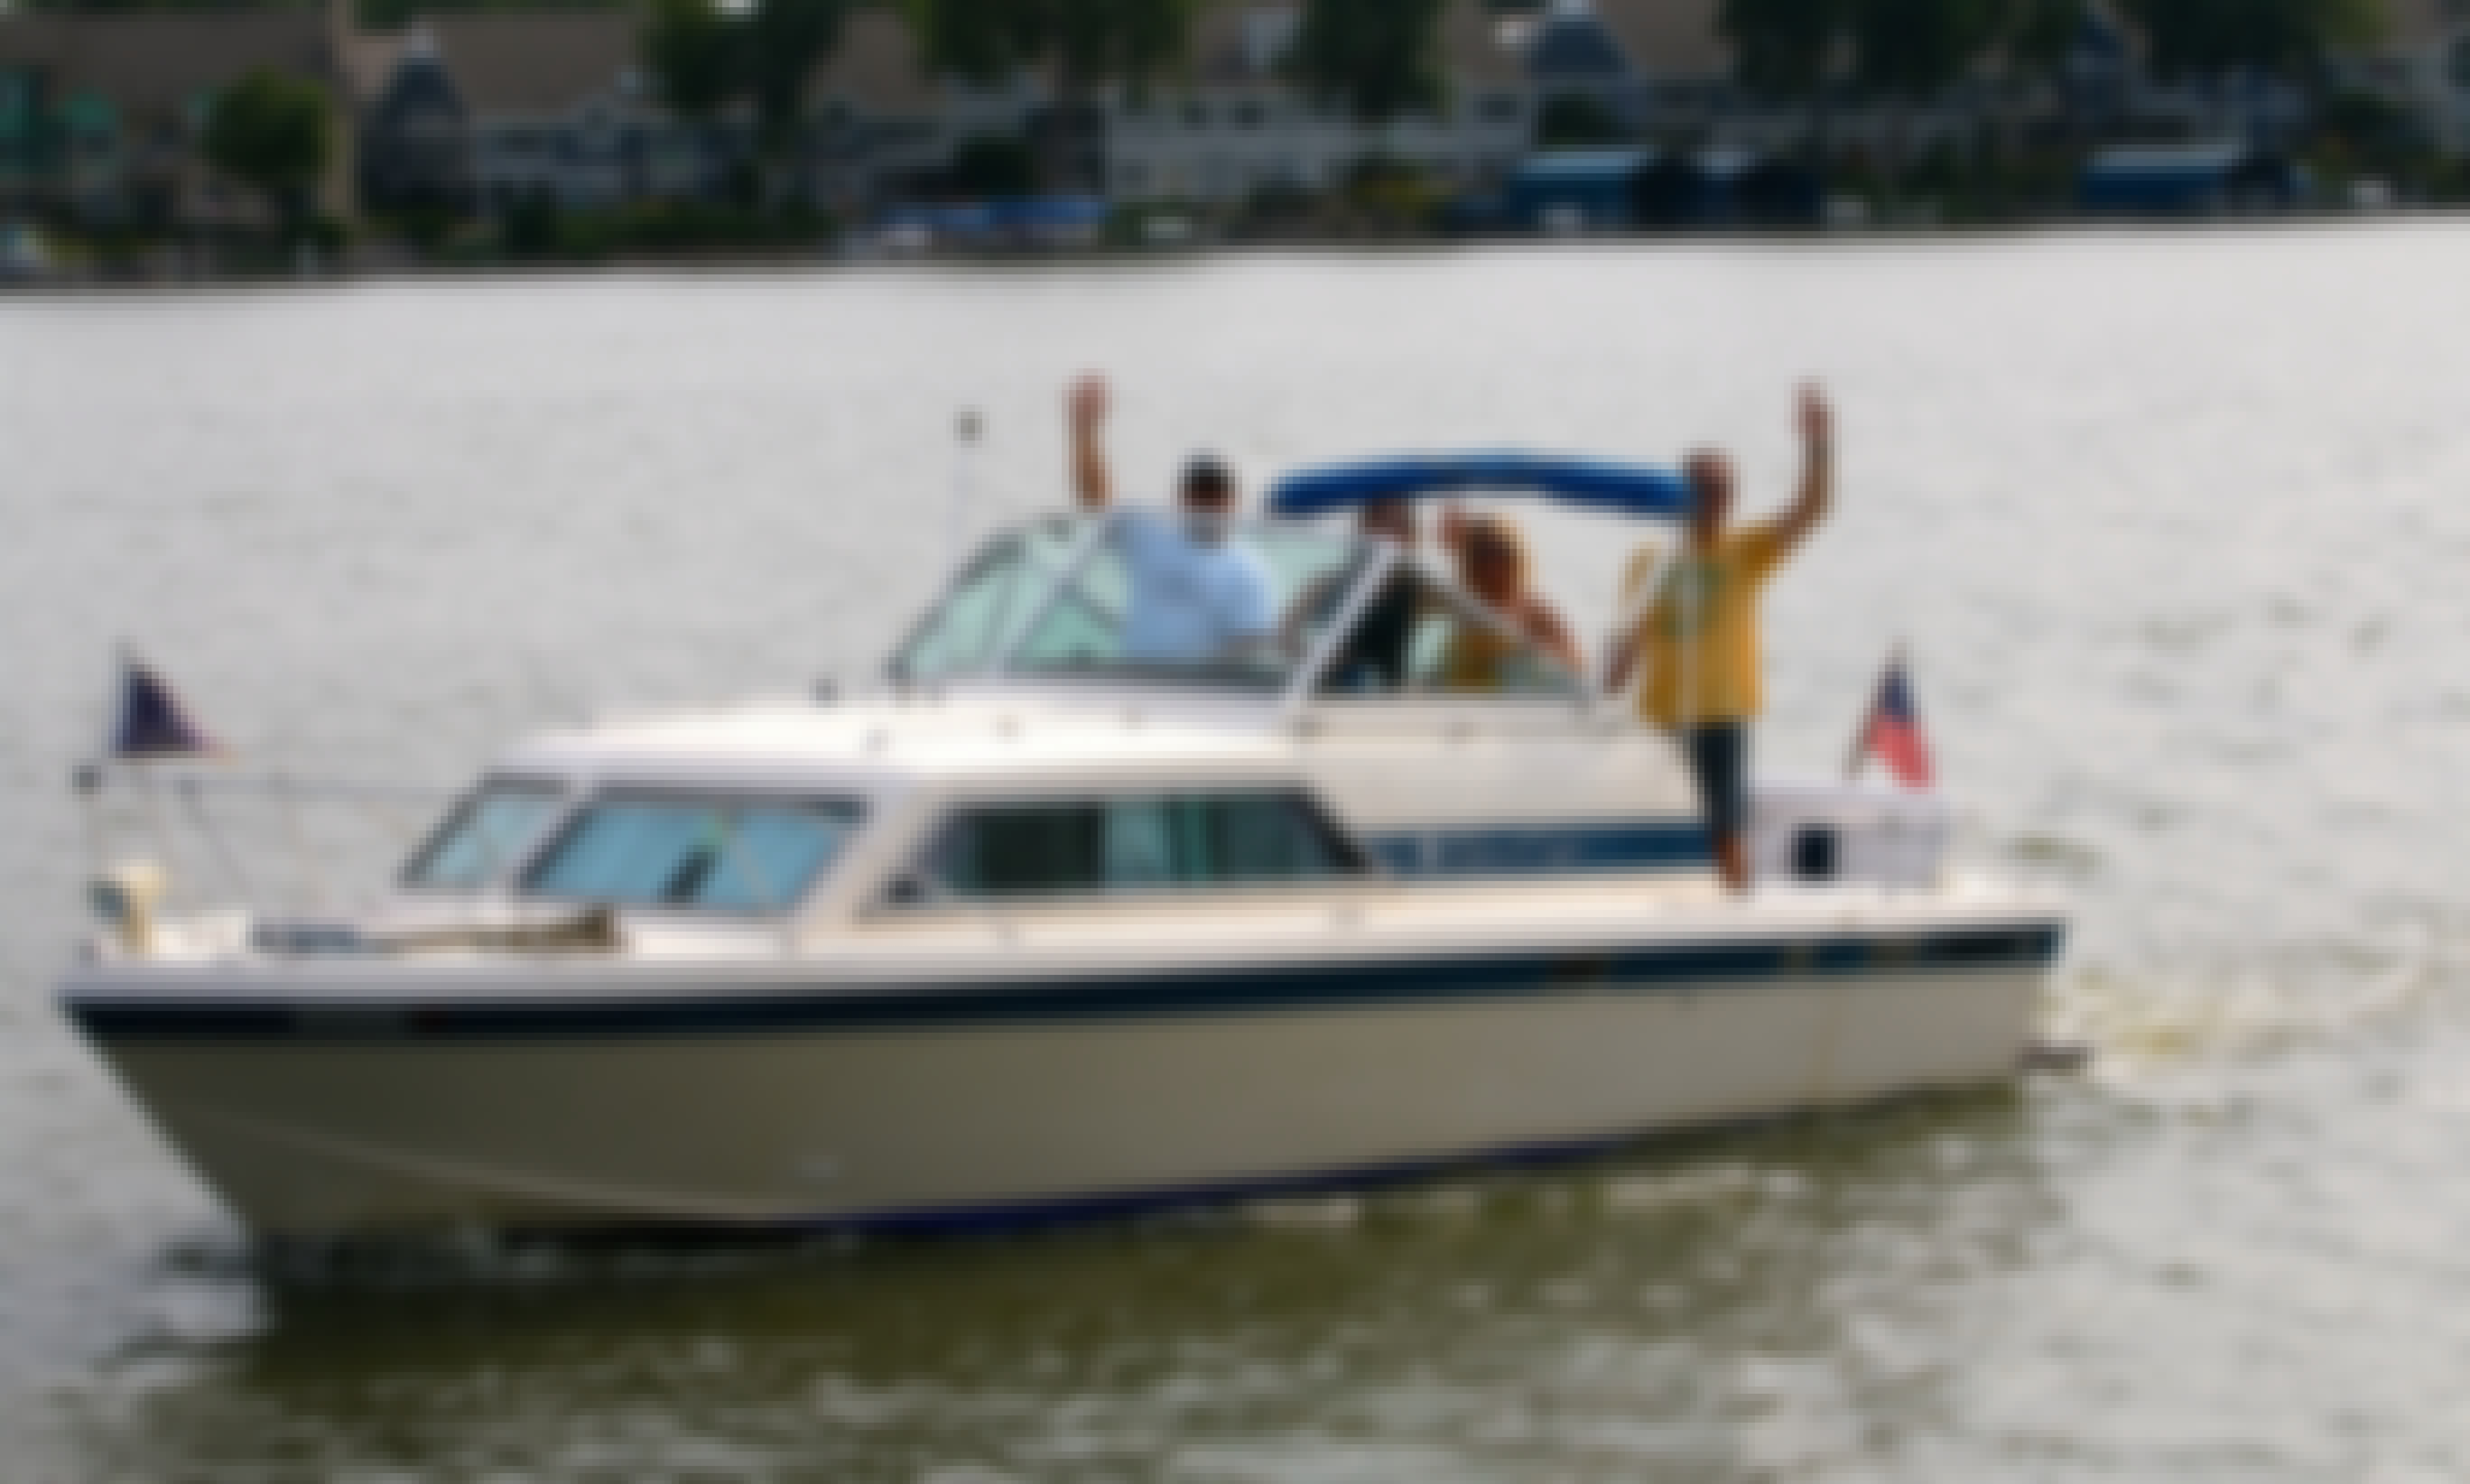 Classic Chris-Craft Cocktail Cruiser with Captain